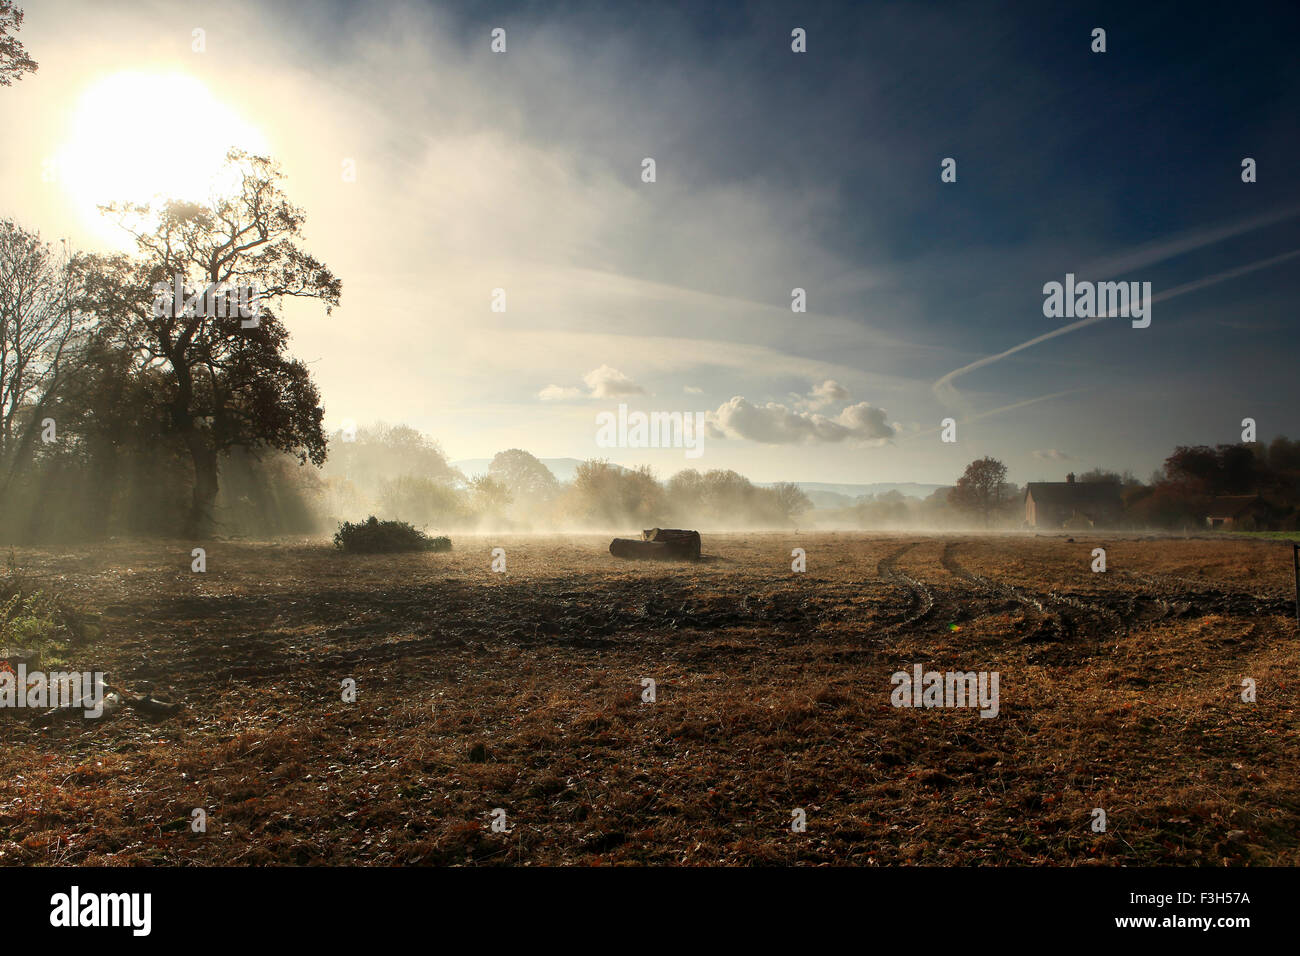 November morning near Child Okeford, Dorset with the rising sun shining through trees and some mist over the fields. - Stock Image